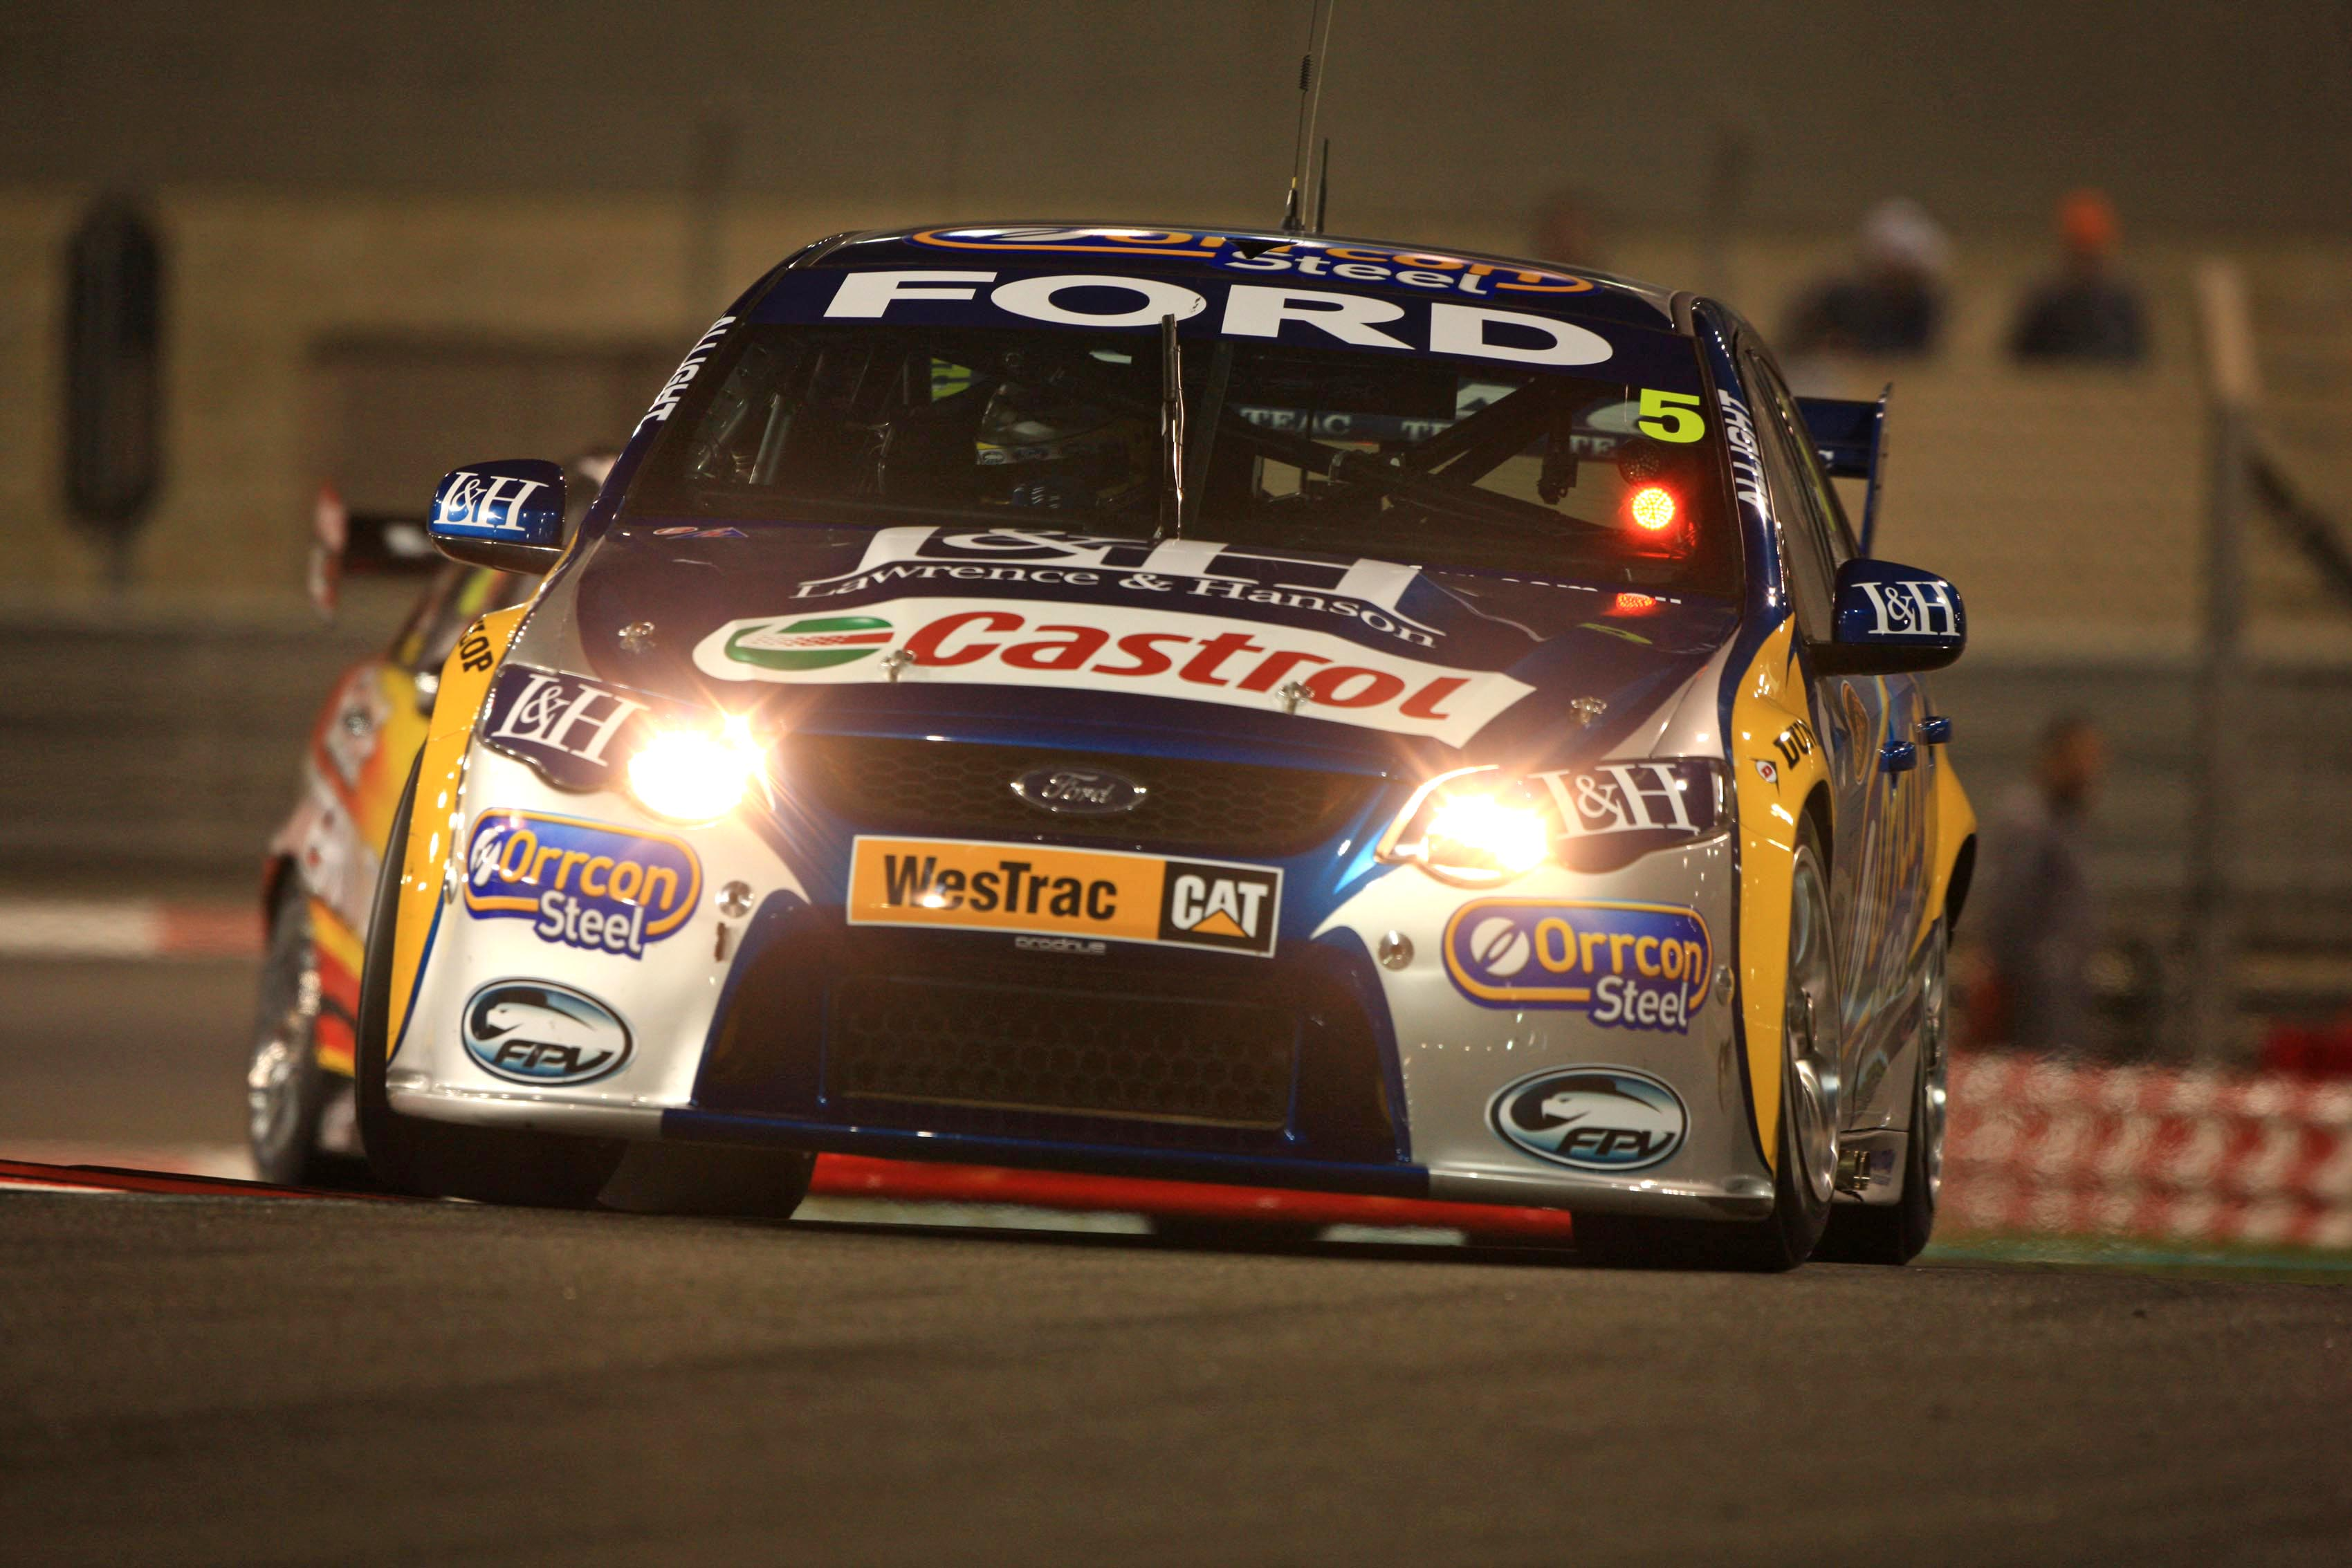 Aussie V8 Supercars race racing v 8 ford f wallpaper 3400x2267